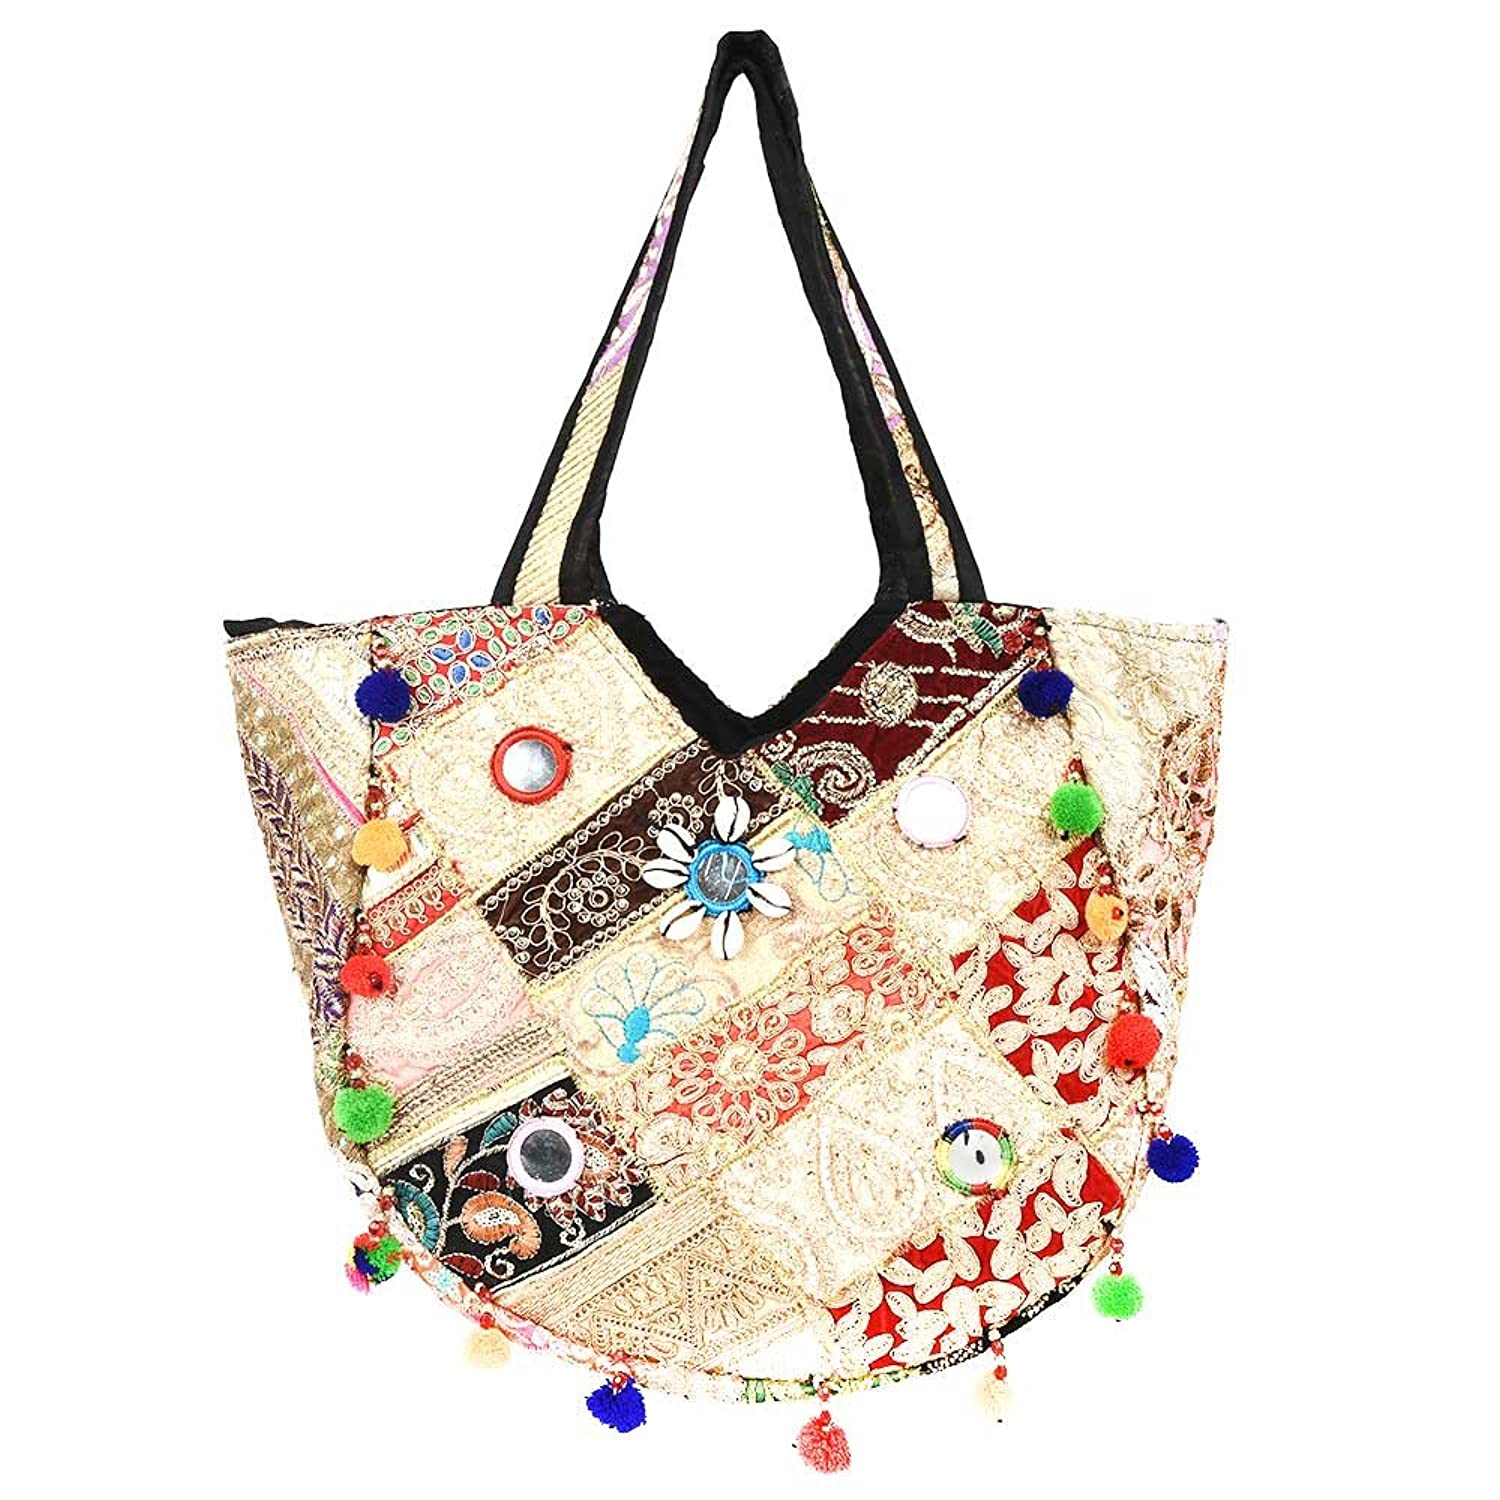 IndianShelf Handmade Hobo Bag White Indian Shoulder Bags Cotton Hand Bags Embroidery Purse Bags Online